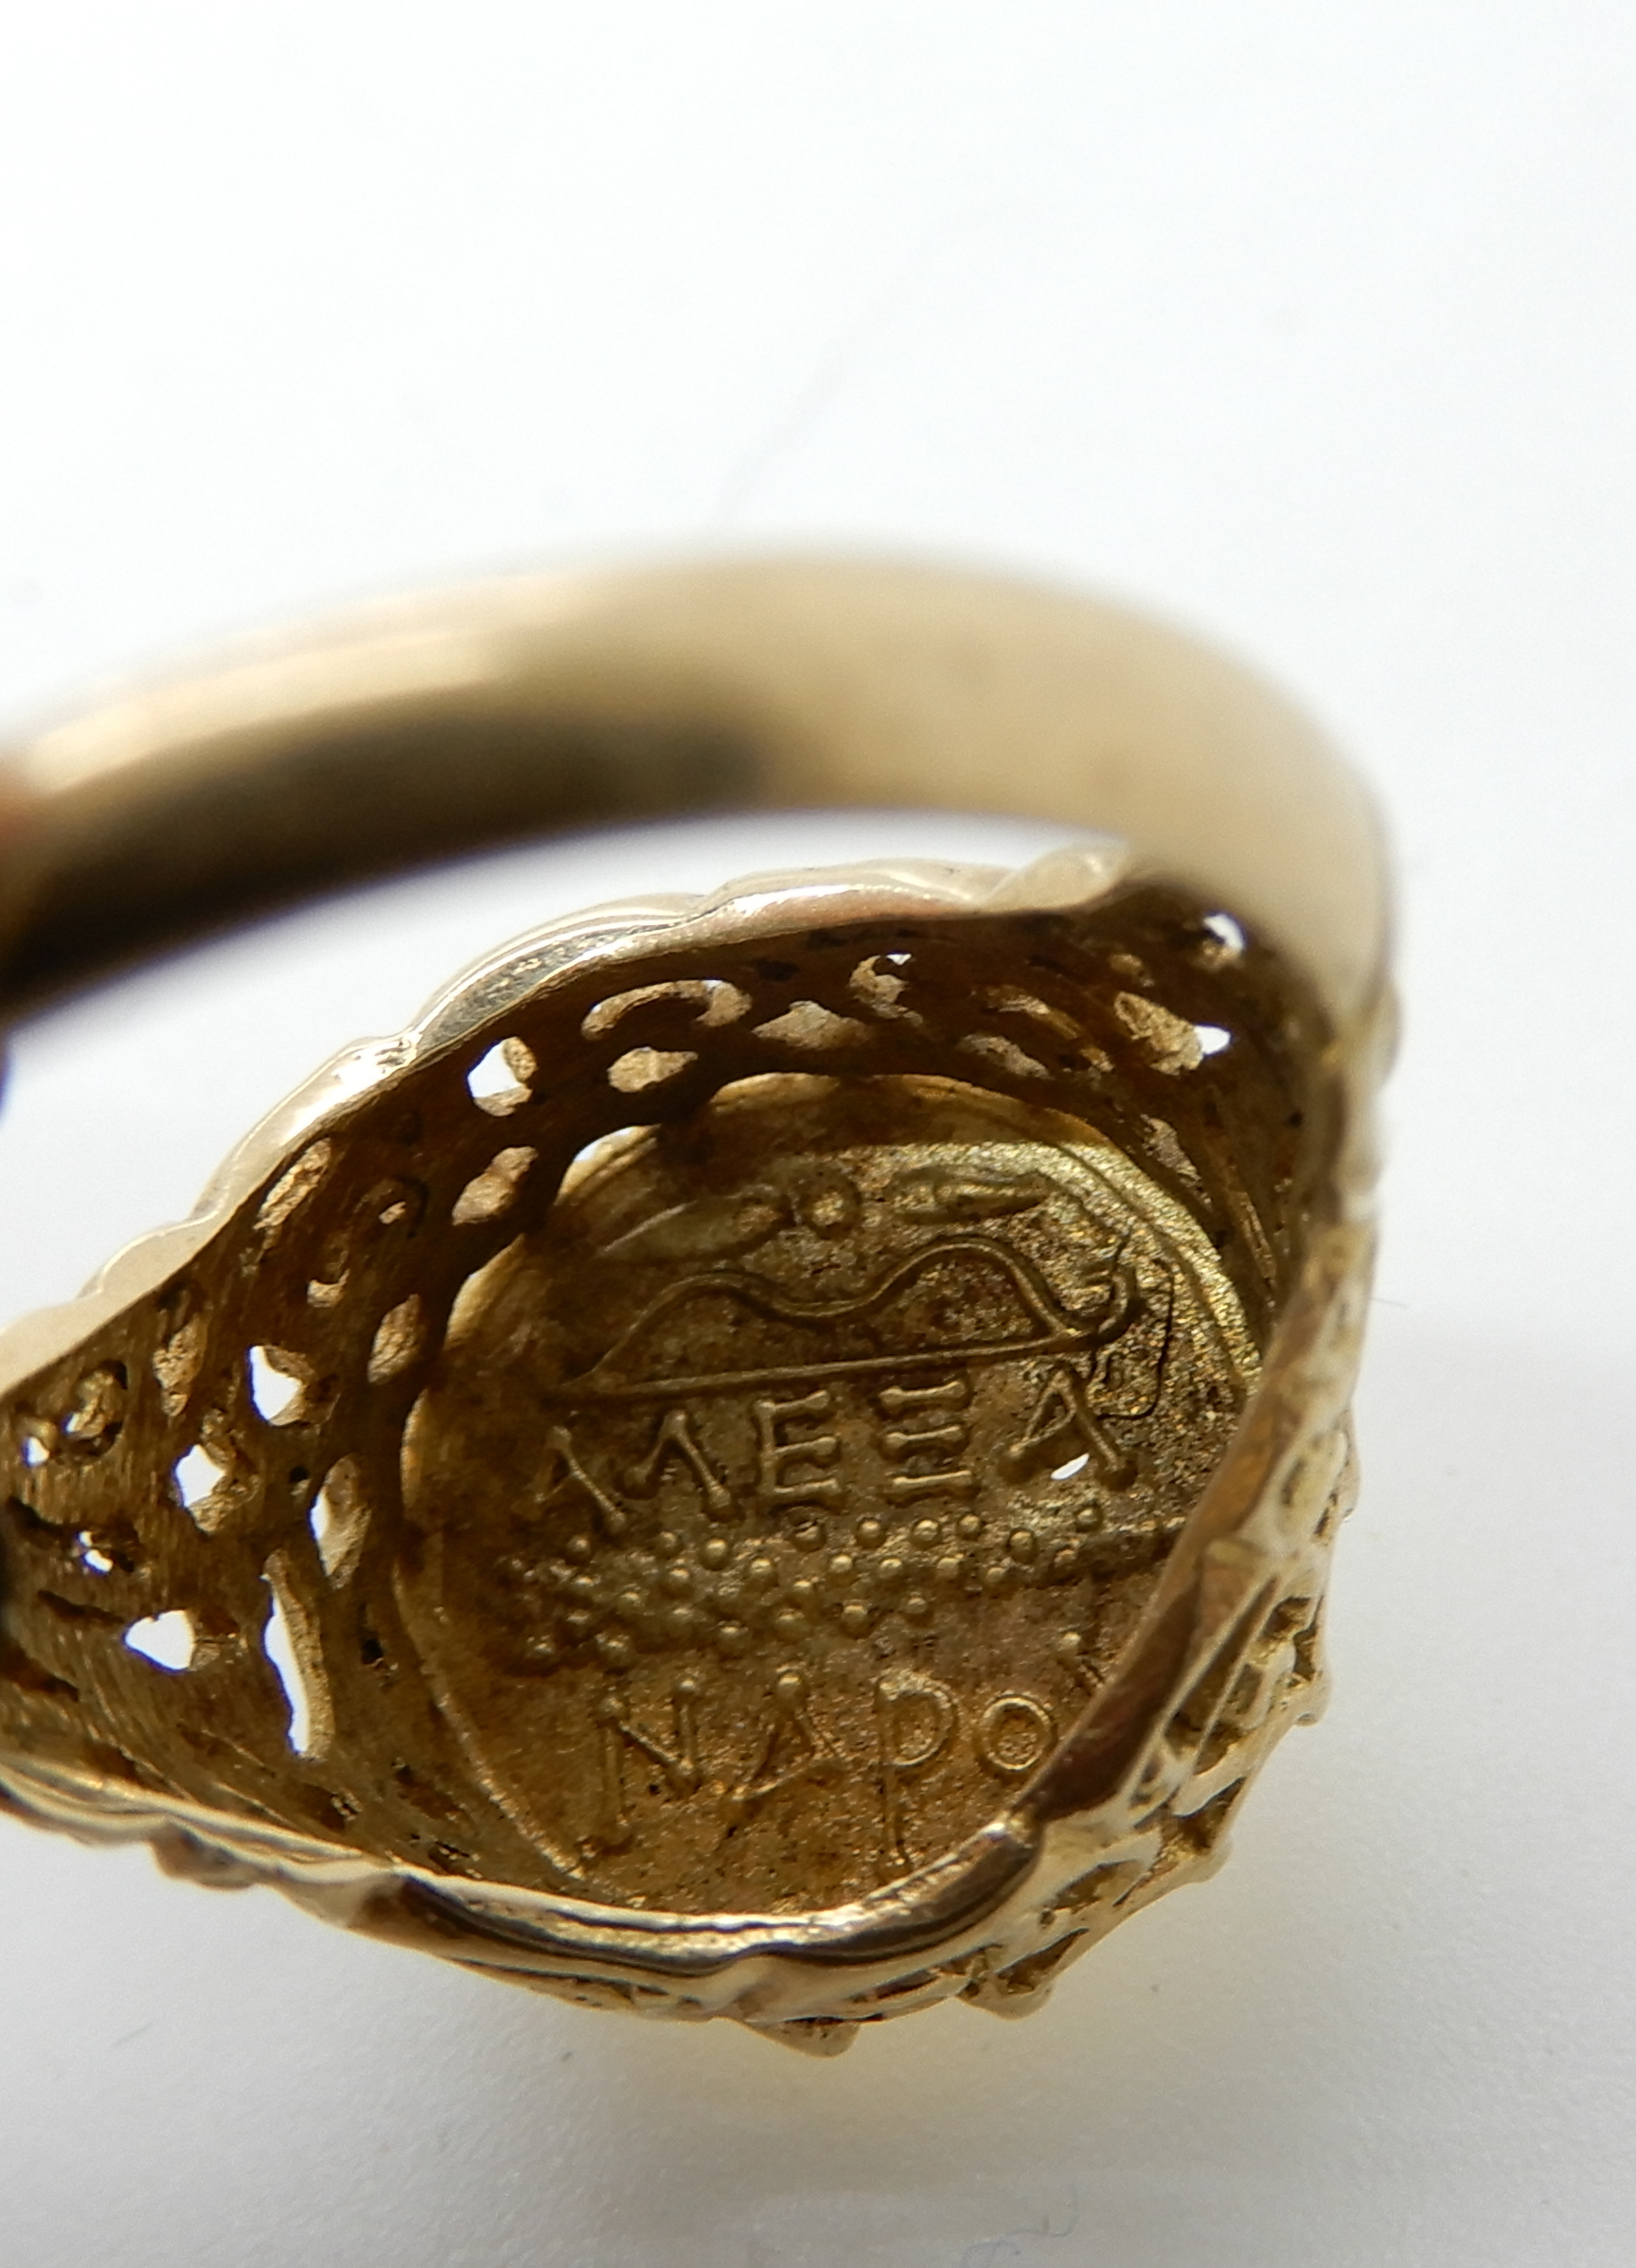 Lot 17 - A 14k ring stamped 585, set with a Greek style coin, size P, weight 4.4gms Condition Report: